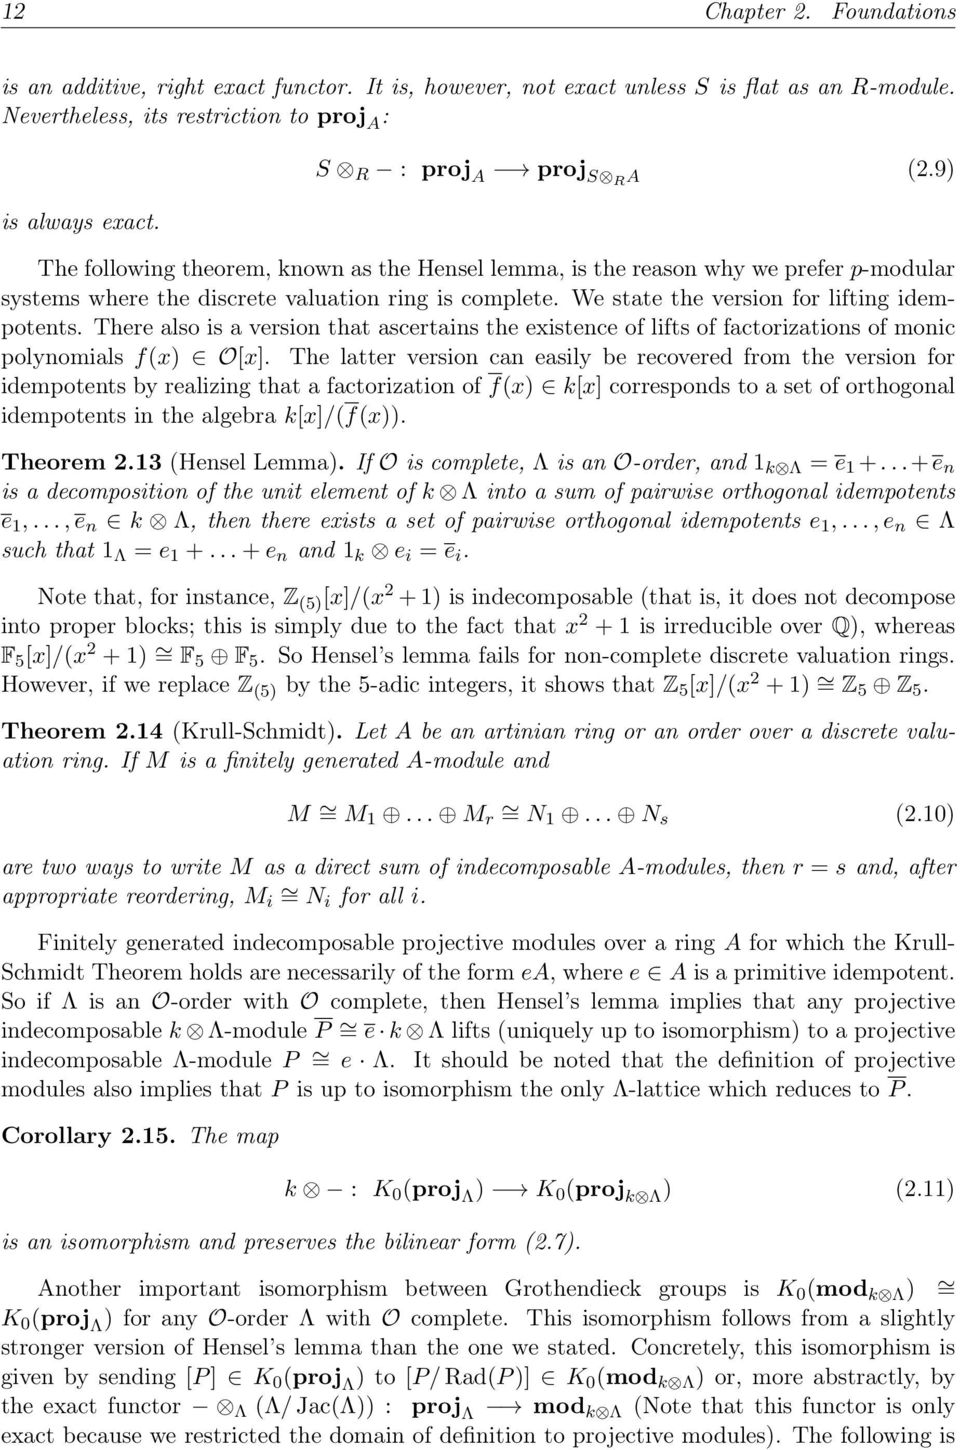 We state the version for lifting idempotents. There also is a version that ascertains the existence of lifts of factorizations of monic polynomials f(x) O[x].